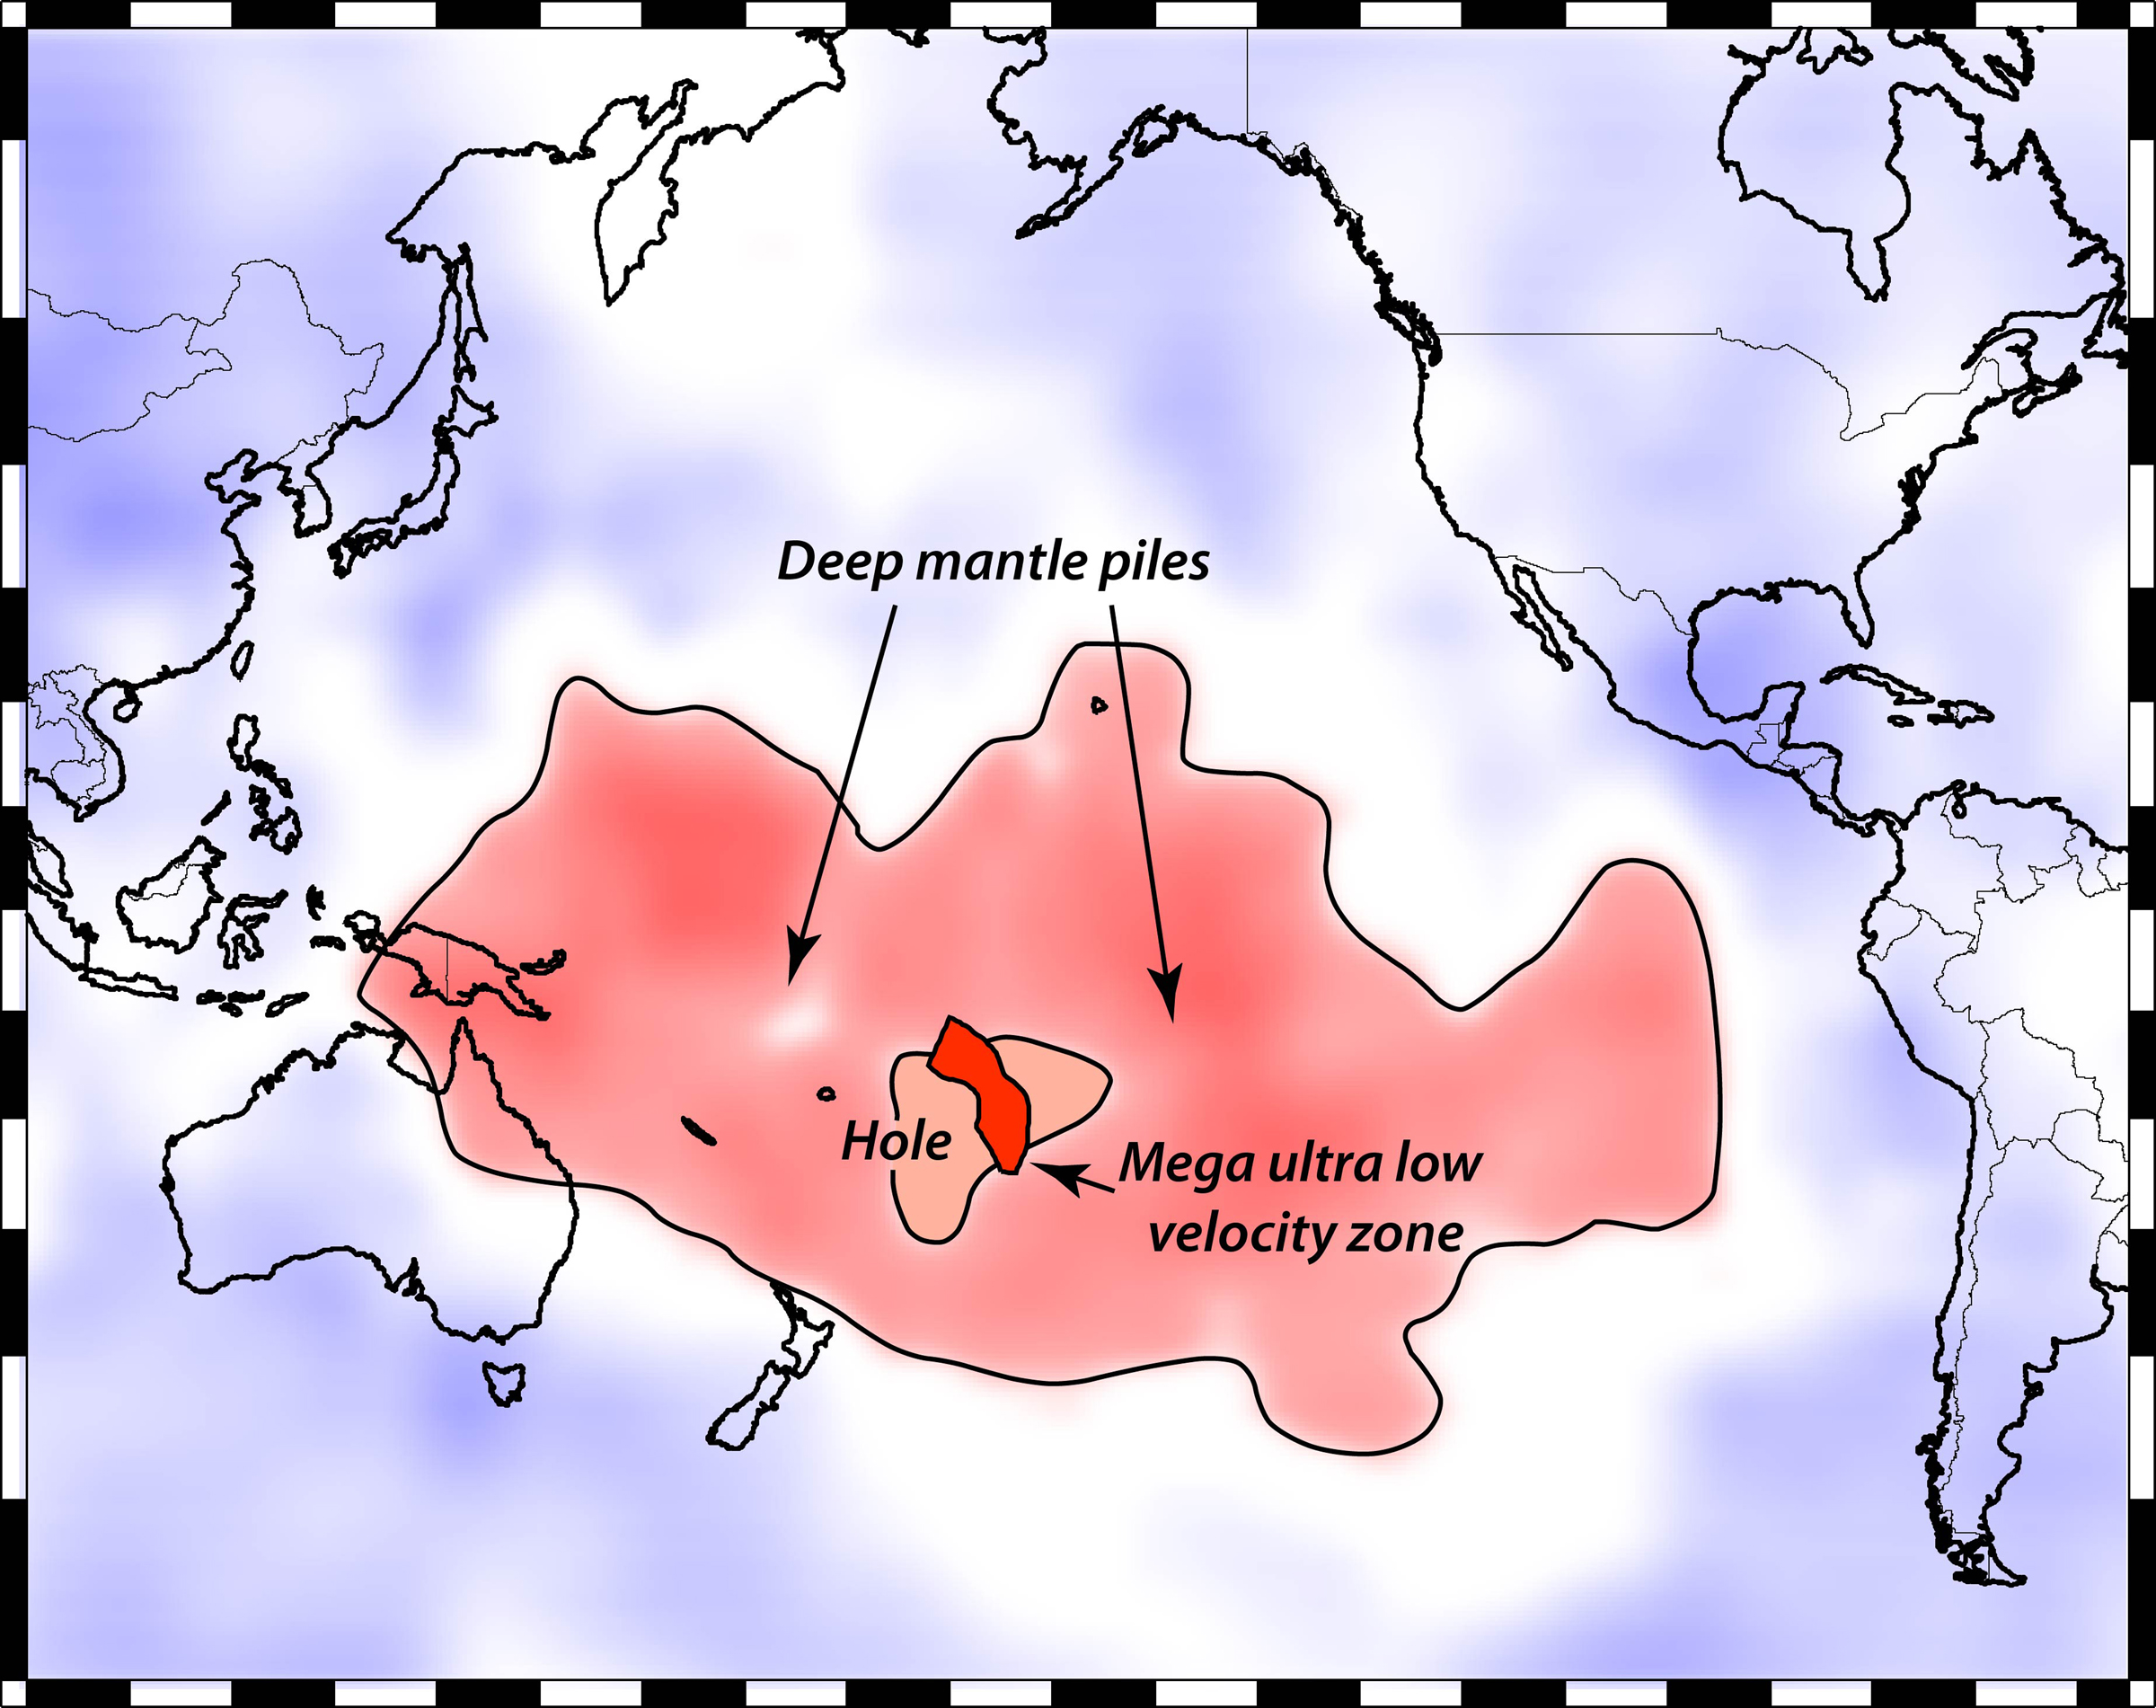 """This map shows Earth's surface superimposed on a depiction of what a new University of Utah study indicates is happening 1,800 miles deep at the boundary between Earth's warm, rocky mantle and its liquid outer core. Using seismic waves the probe Earth's deep interior, seismologist Michael Thorne found evidence that two continent-sized piles of rock are colliding as they move atop the core. The merger process isn't yet complete, so there is a depression or hole between the merging piles. But in that hole, a Florida-sized blob of partly molten rock – called a """"mega ultra low velocity zone"""" – is forming from the collision of smaller blobs on the edges of the continent-sized piles. Thorne believe this process is the beginning stage of massive volcanic eruptions that won't occur for another 100 million to 2100 million years."""